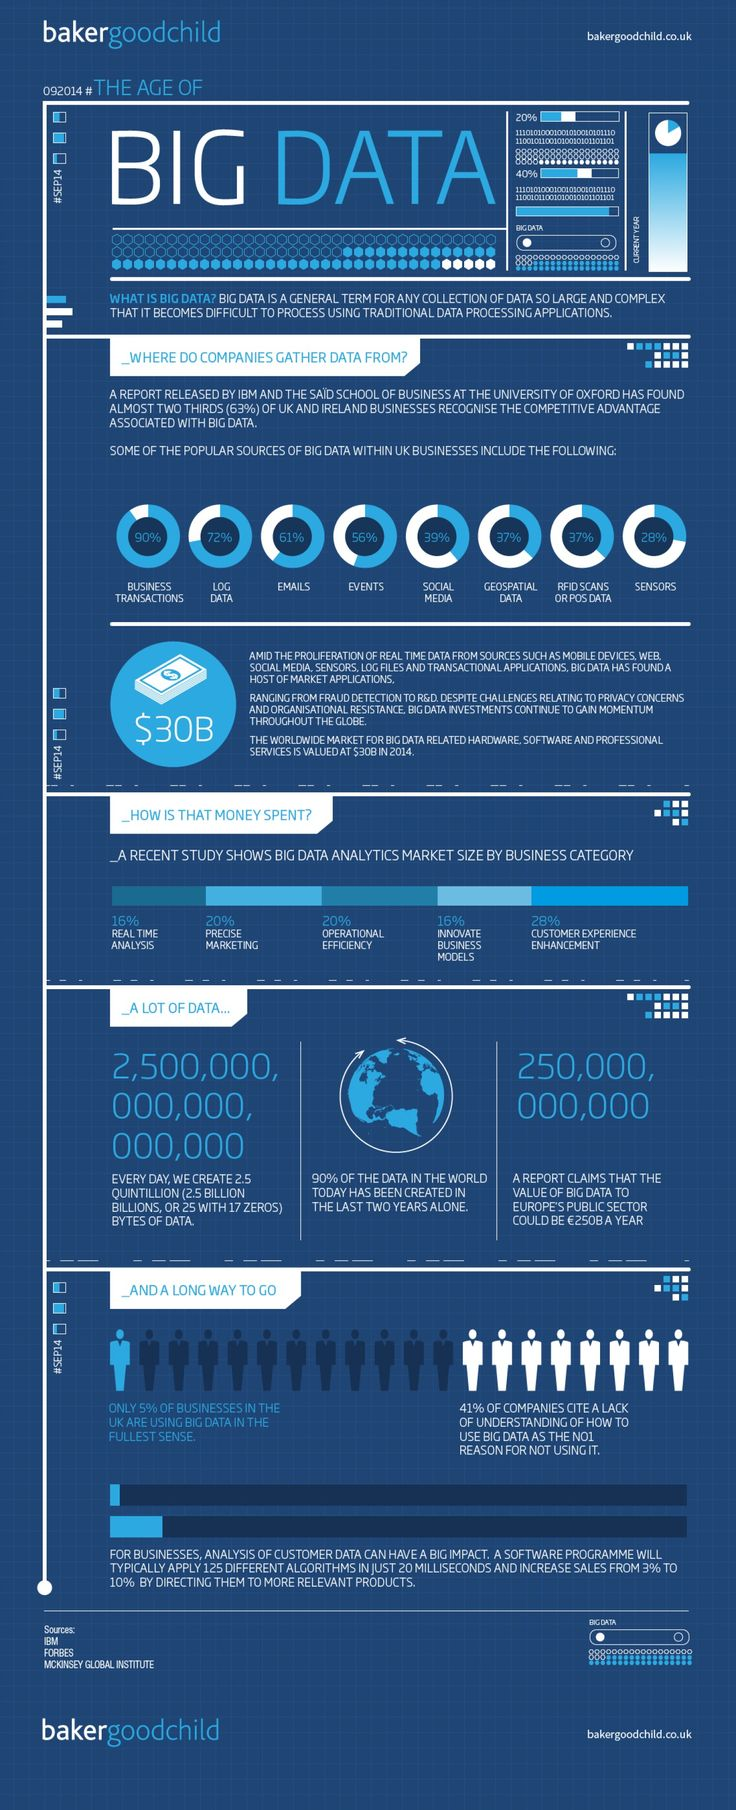 https://thoughtleadershipzen.blogspot.com/ #ThoughtLeadership The age of big data #infographic Ideas Negocios Online para www.masymejor.com